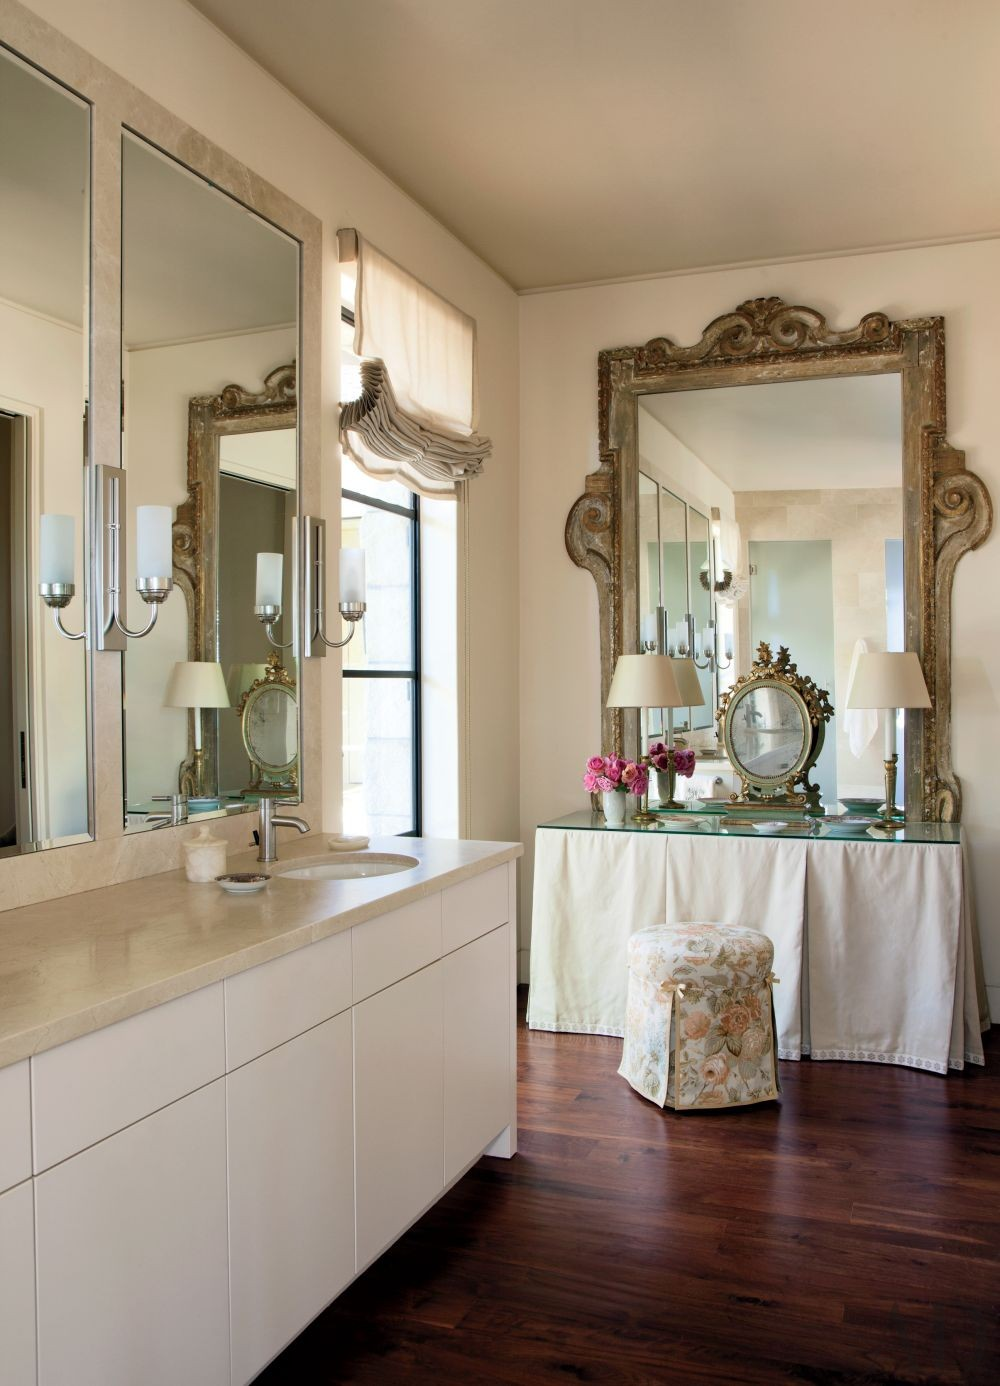 Traditional Bathroom by Suzanne Rheinstein & Assoc. and Manson-Hing Architecture in Montecito, California